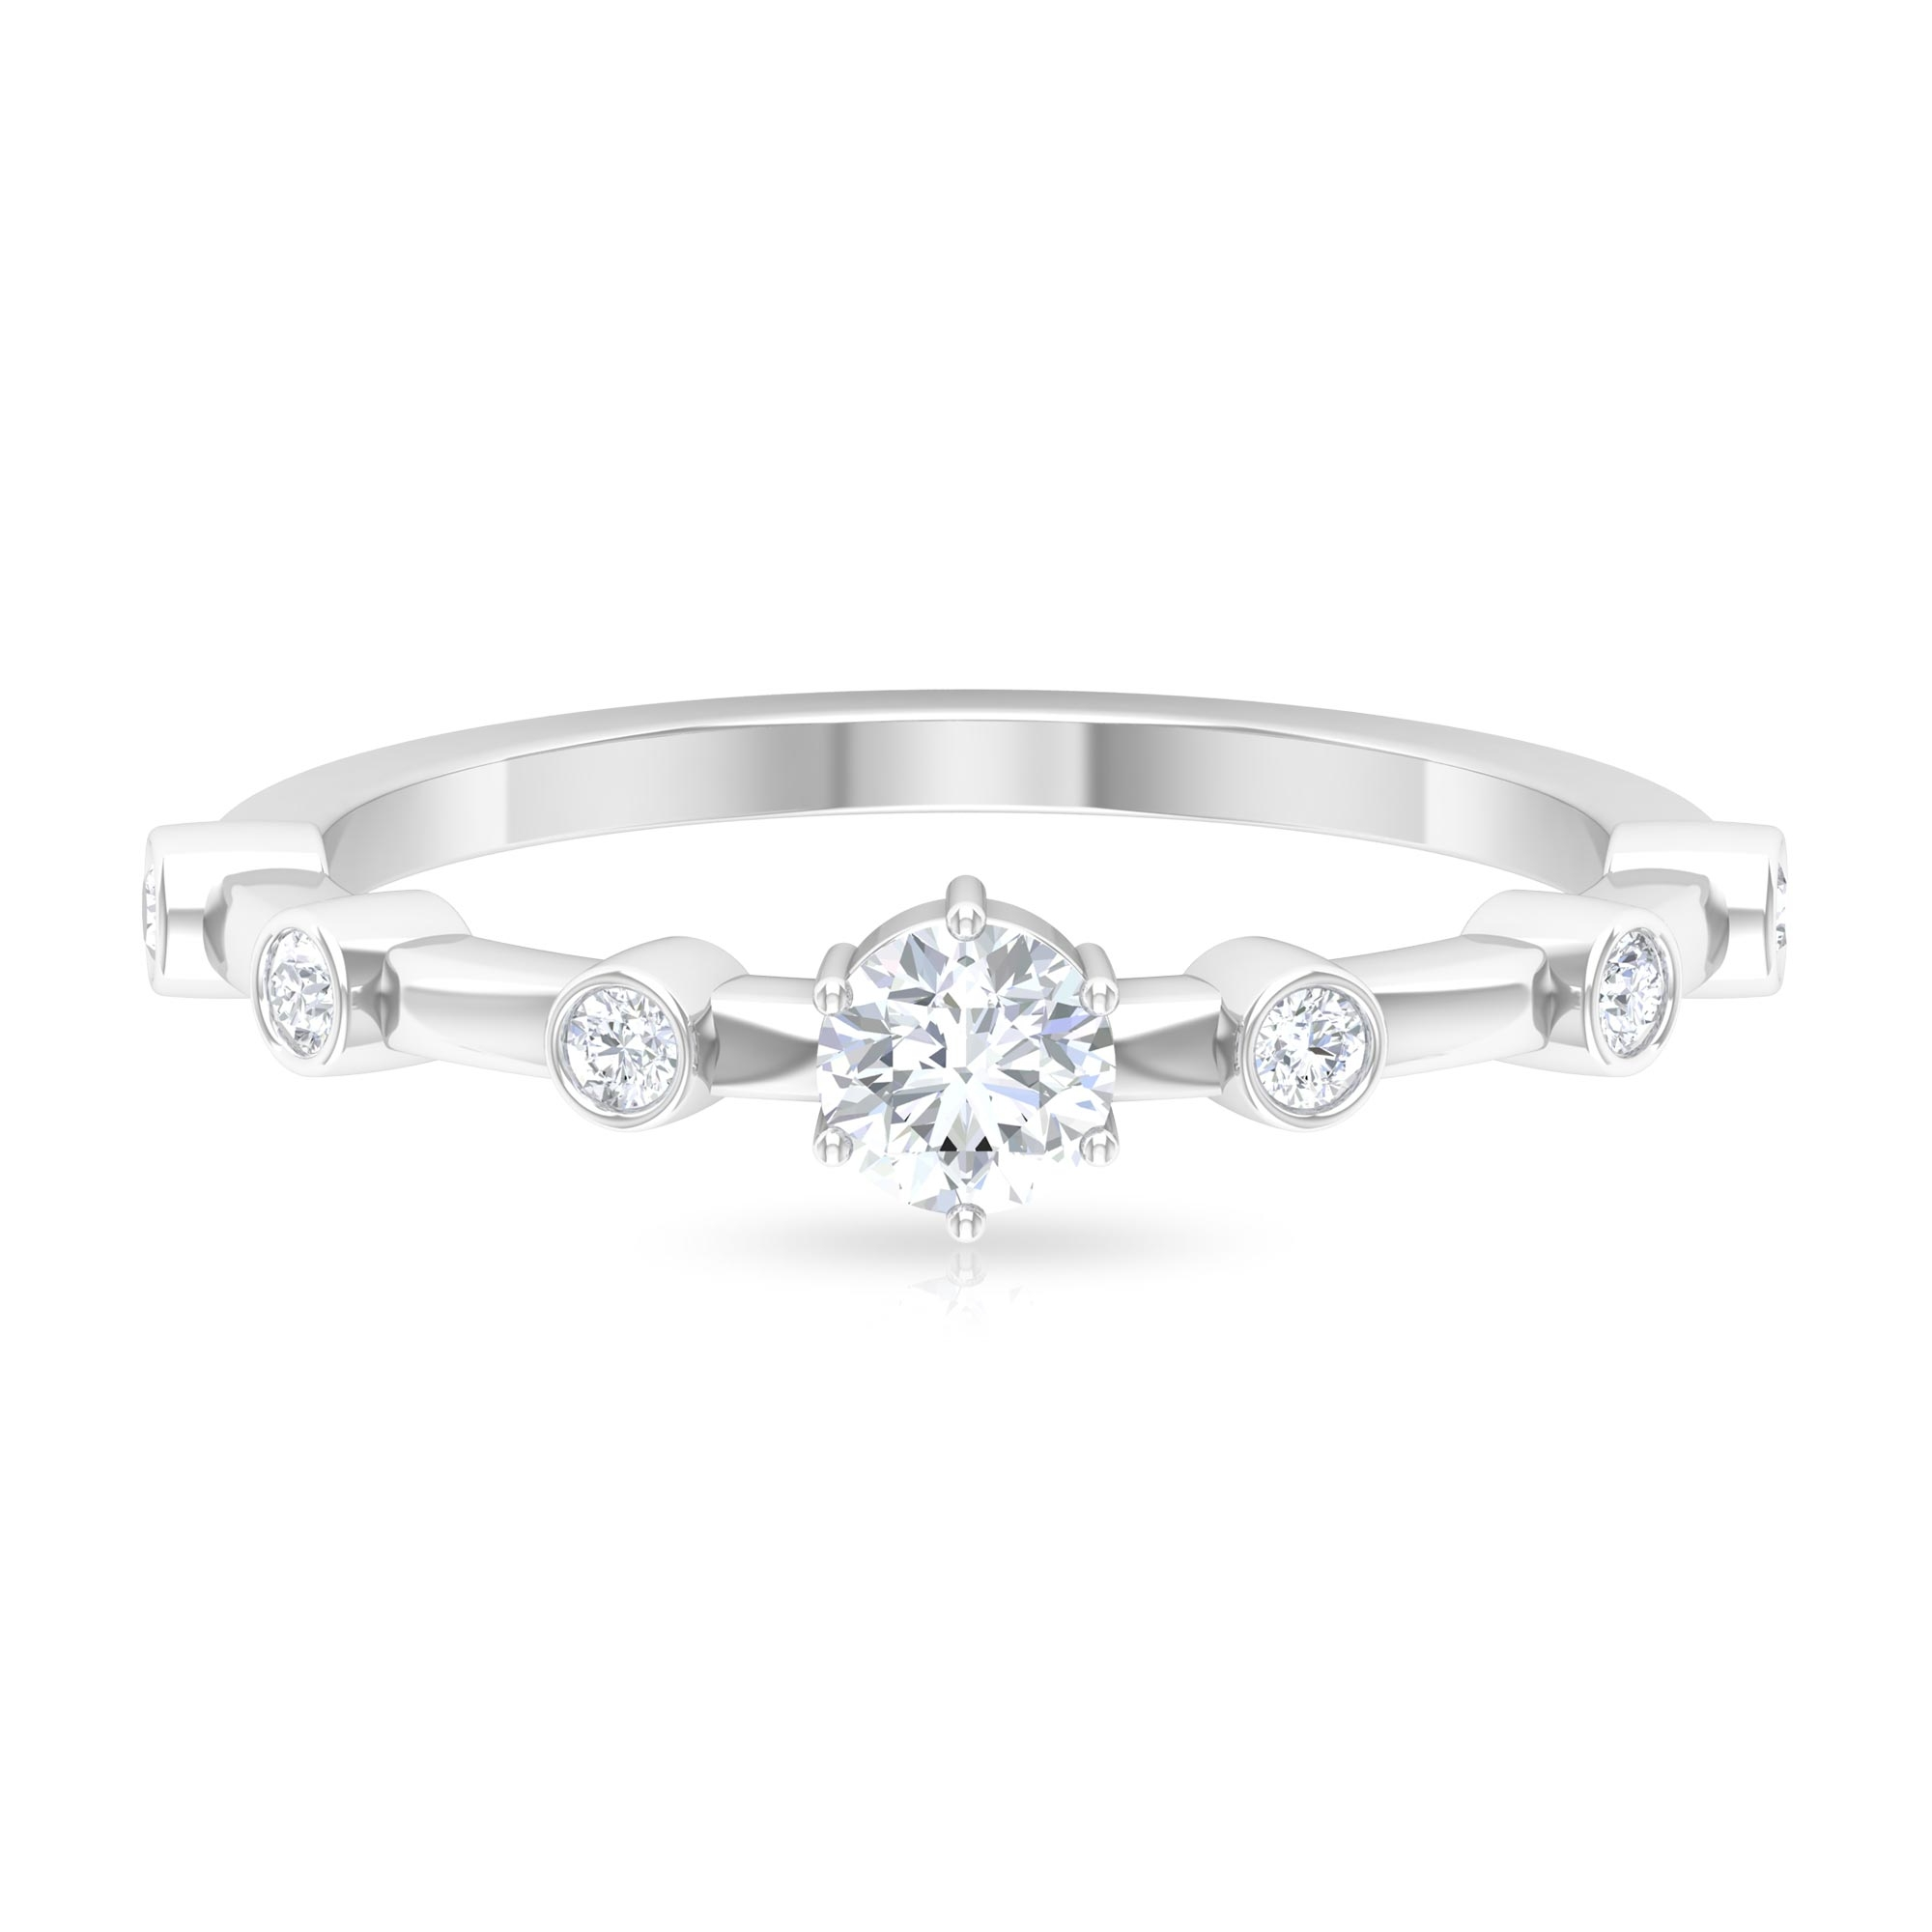 1/2 CT Round Cut Diamond Solitaire Ring in 6 Prong Setting with Spaced Set Side Stones